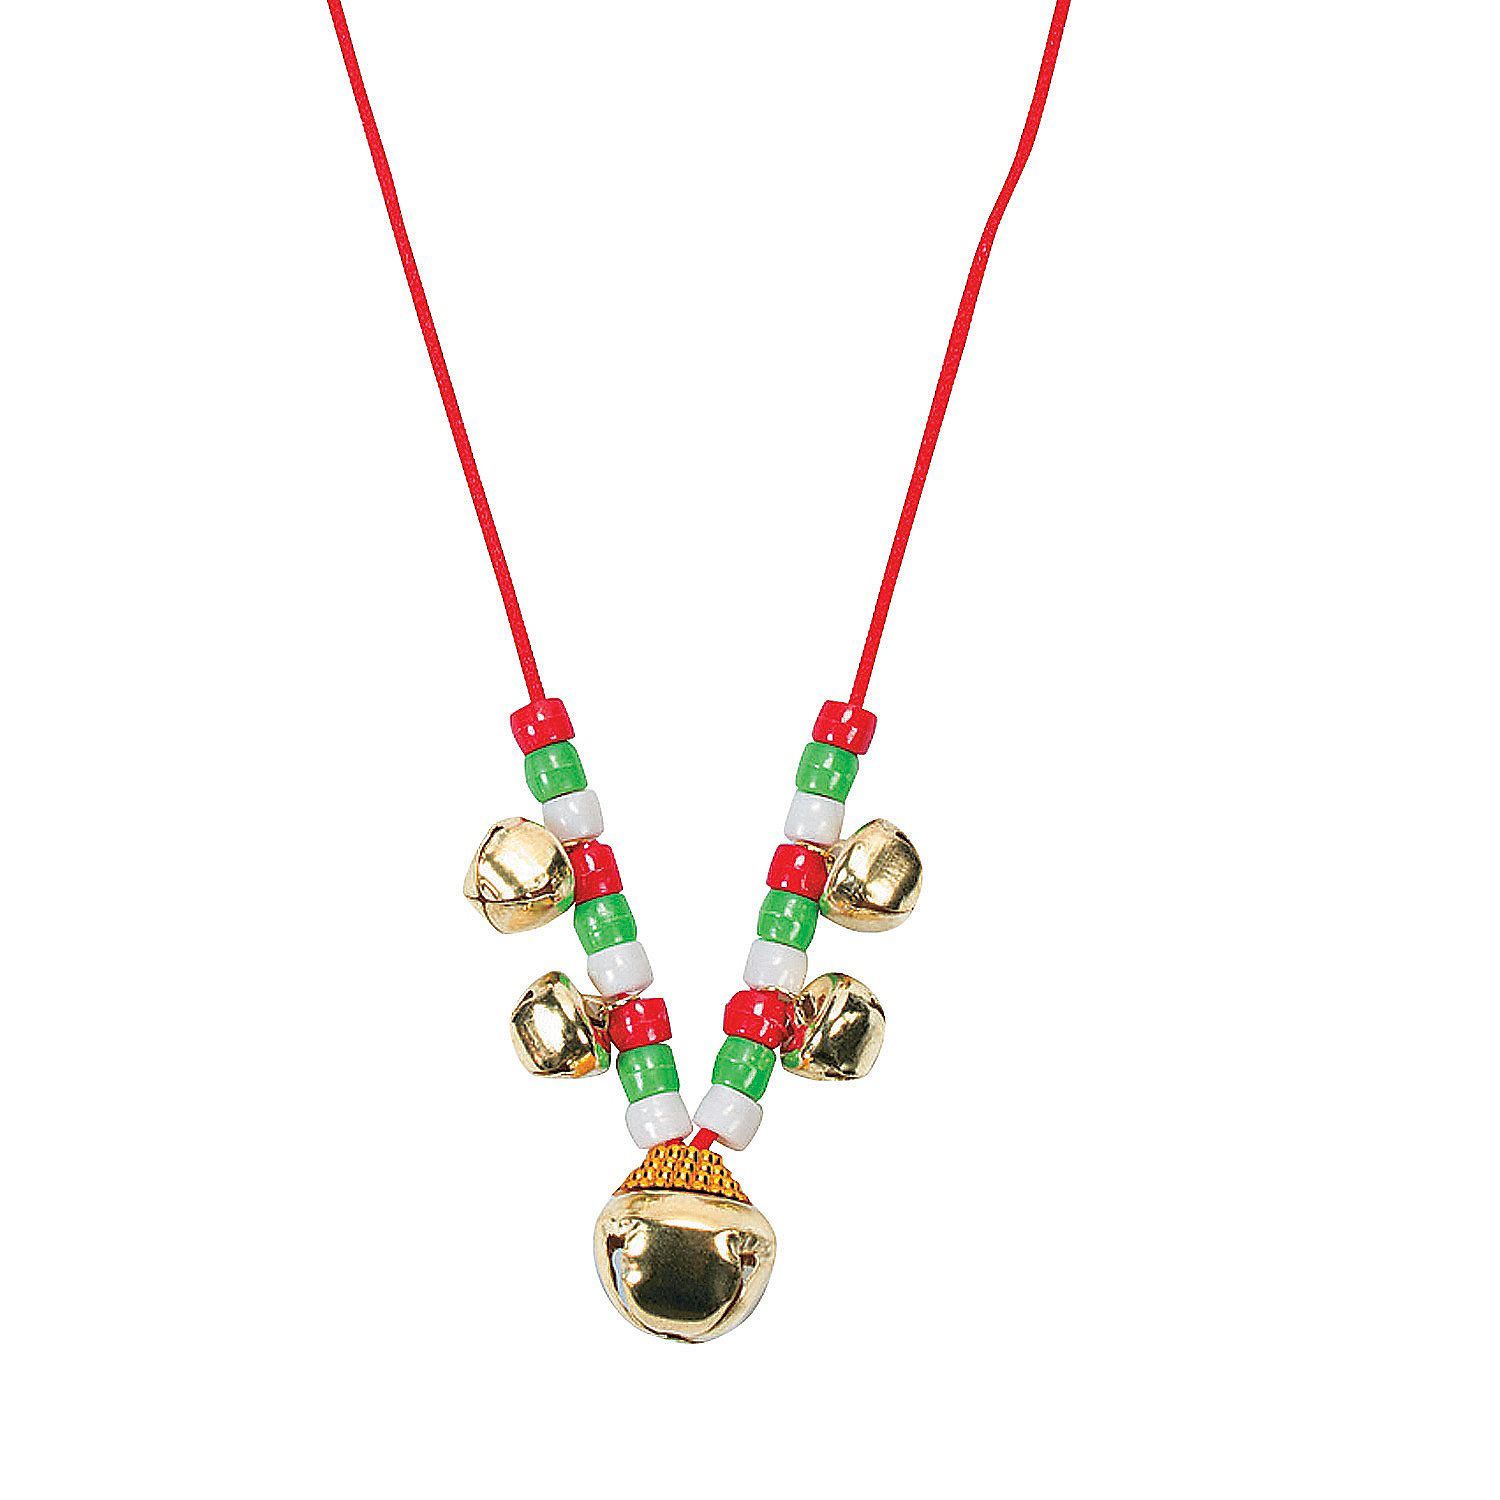 Beaded Jingle Bell Necklace Craft Kit 48